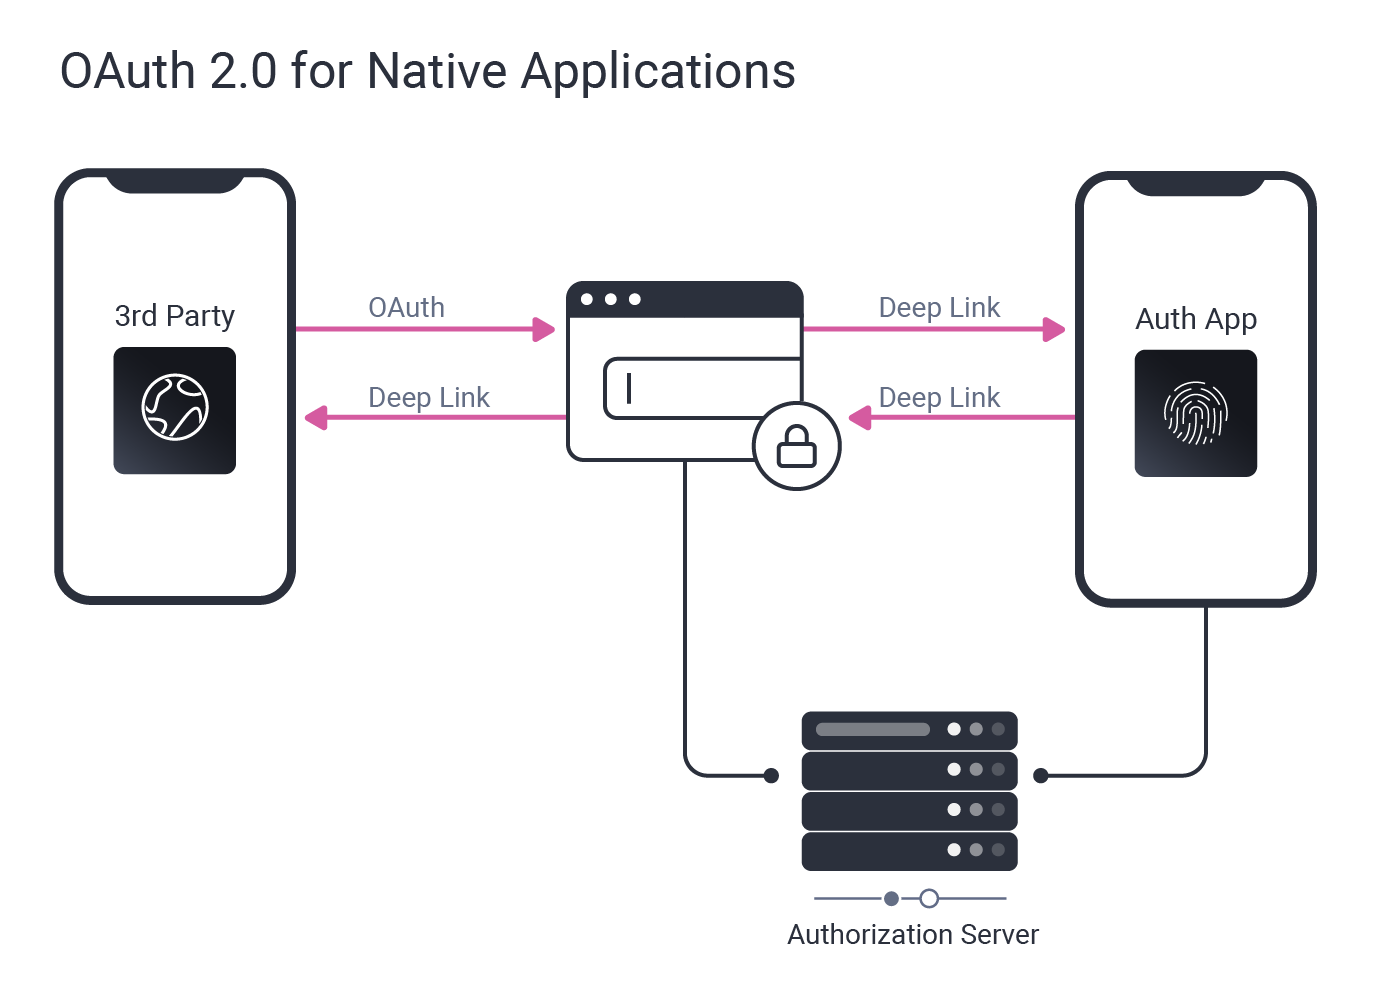 App2app - OAuth 2.0 for Native Applications